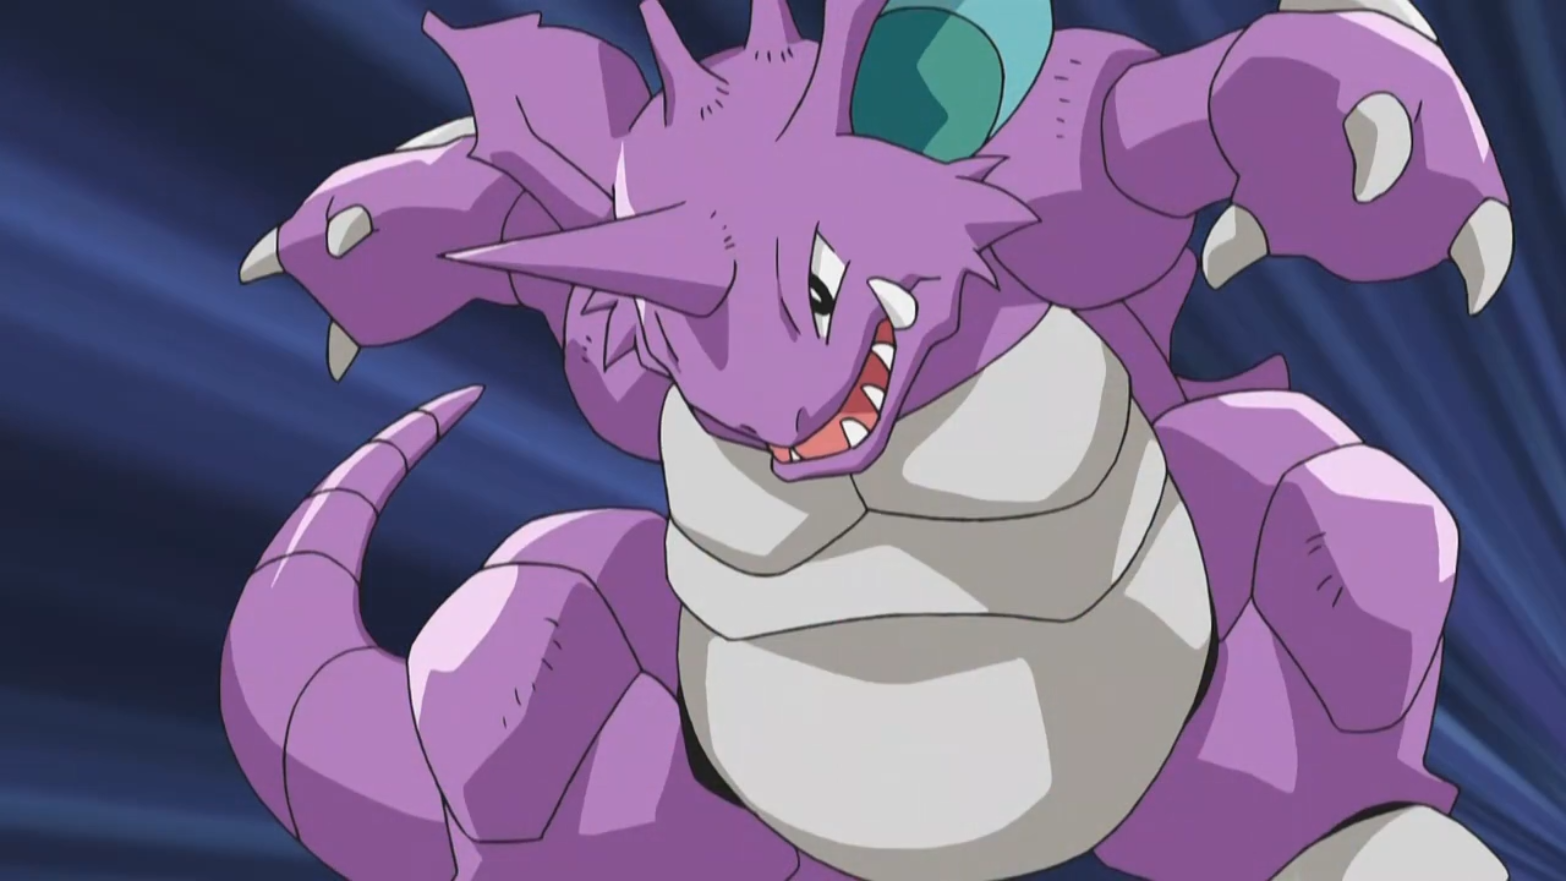 Paul Nidoking